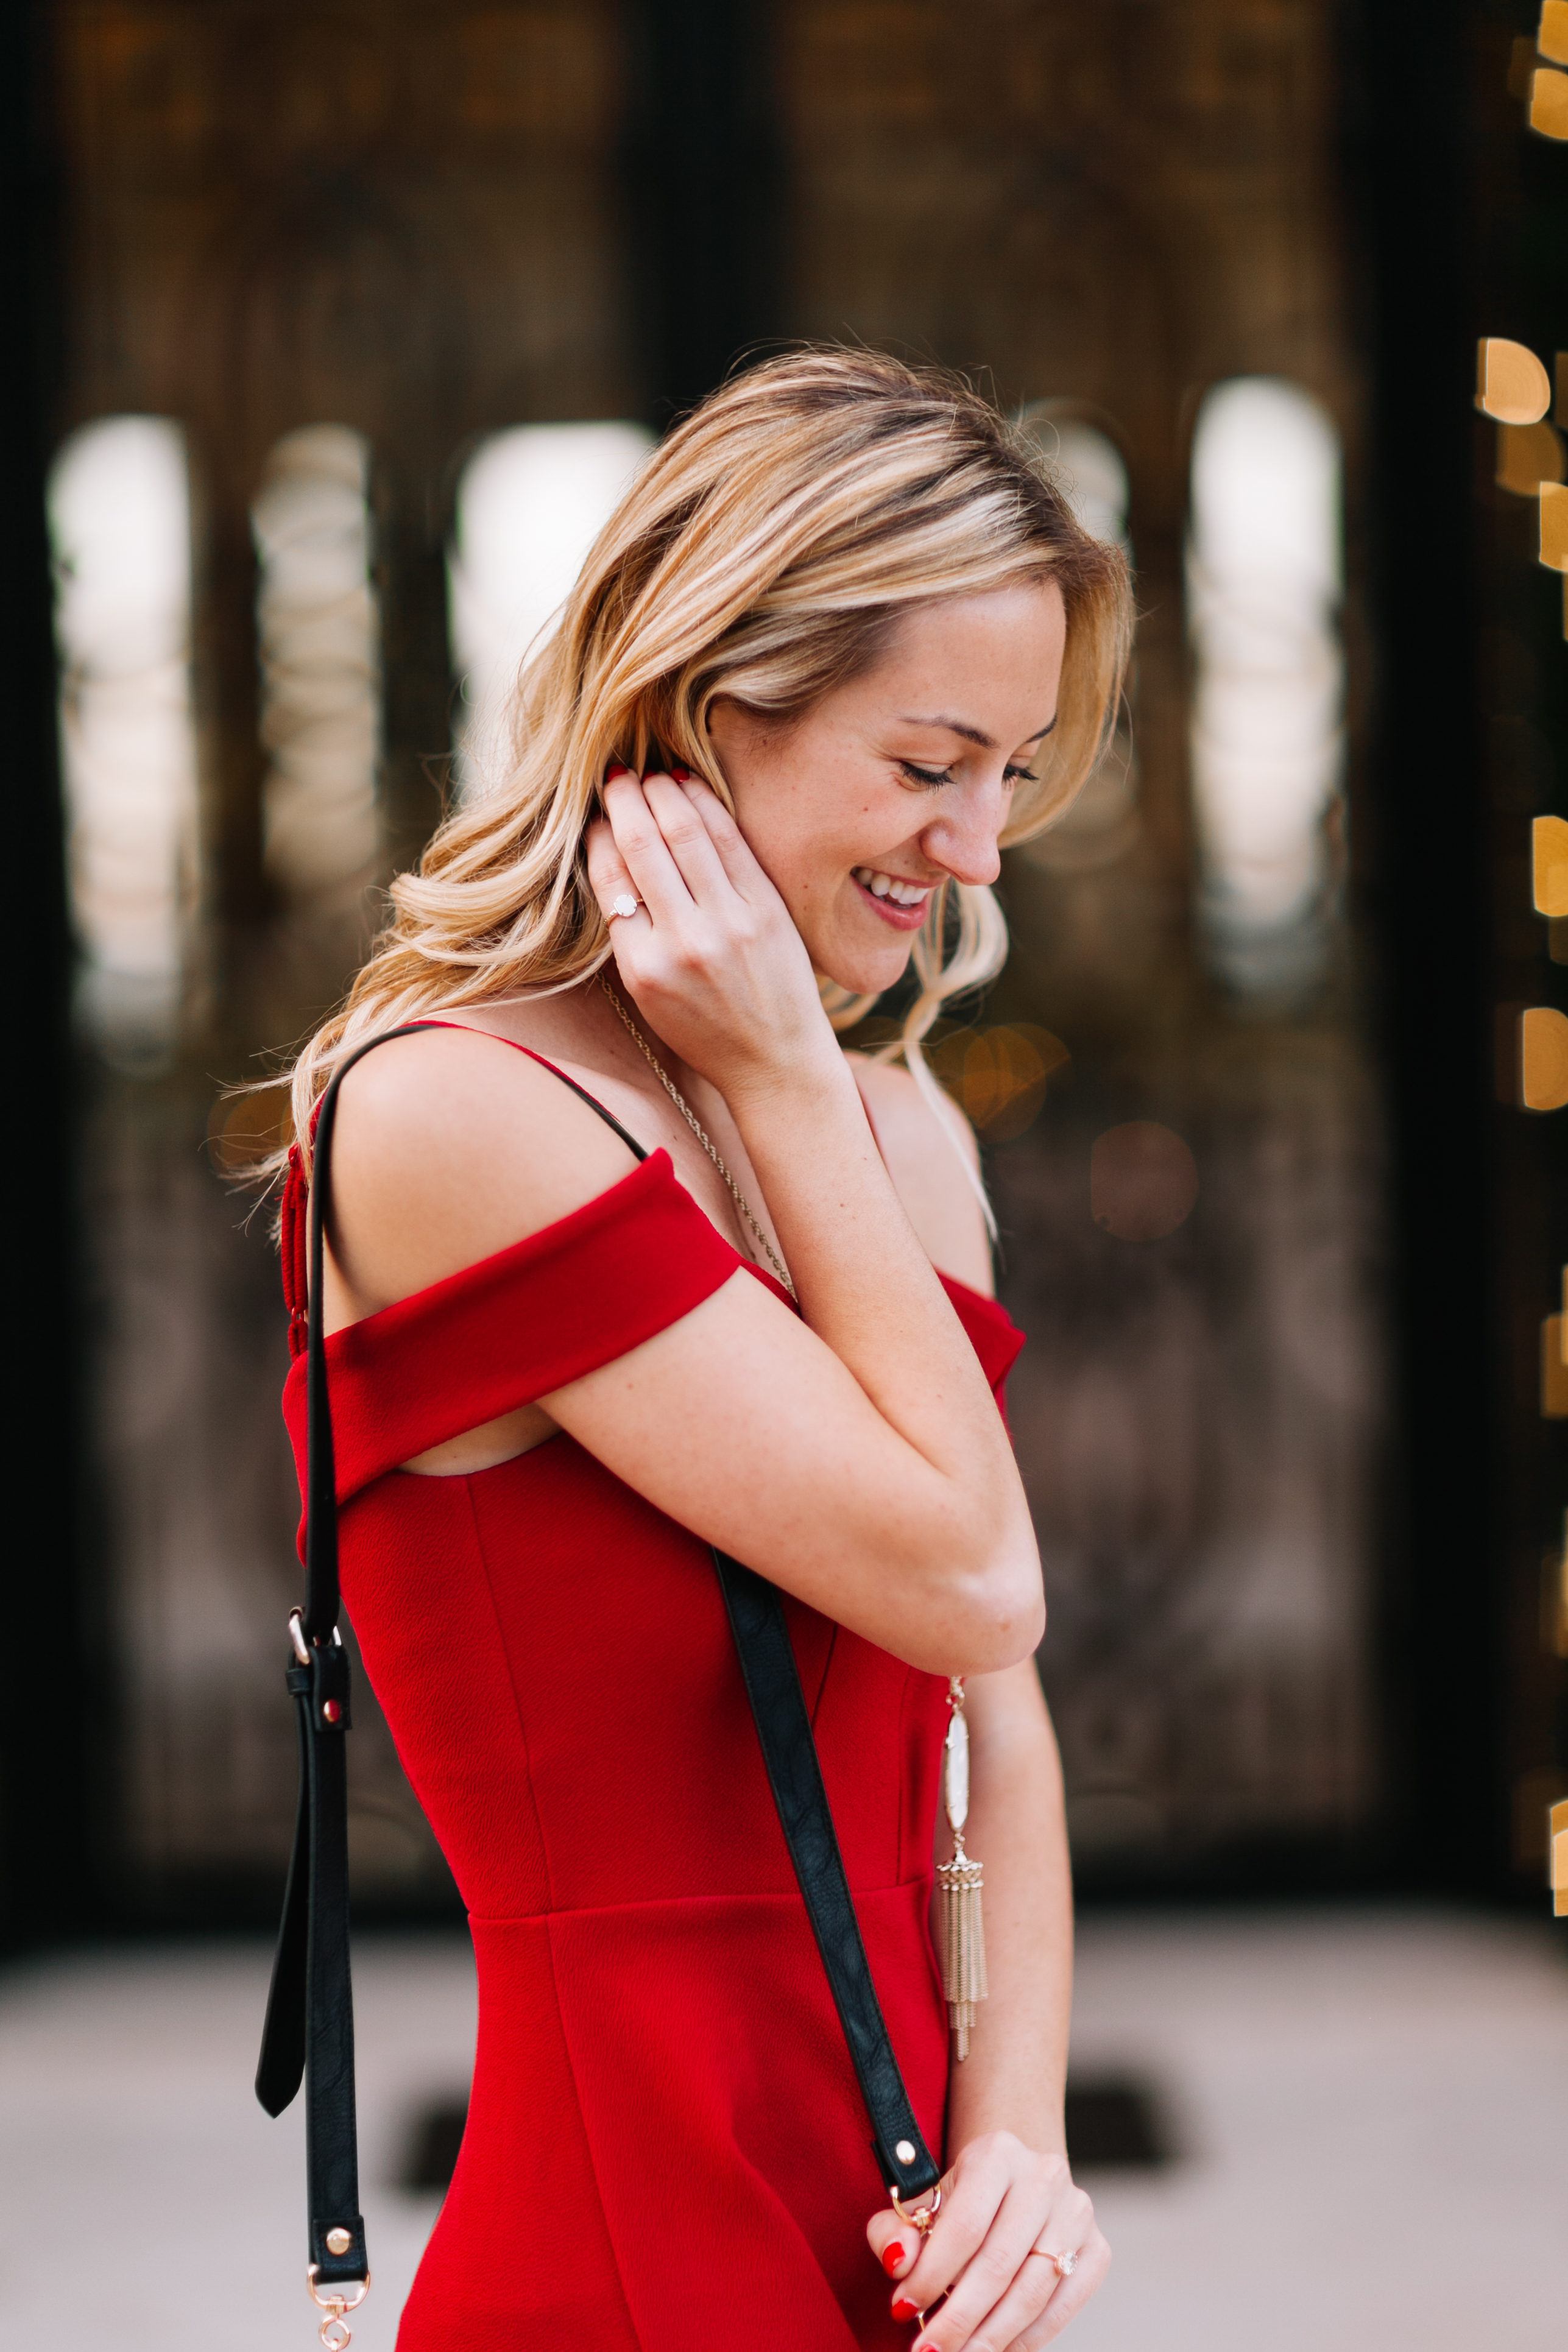 livvyland-blog-olivia-watson-holiday-christmas-party-outfit-dress-what-to-wear-kayla-snell-photography-off-the-shoulder-sweetheart-neckline-2